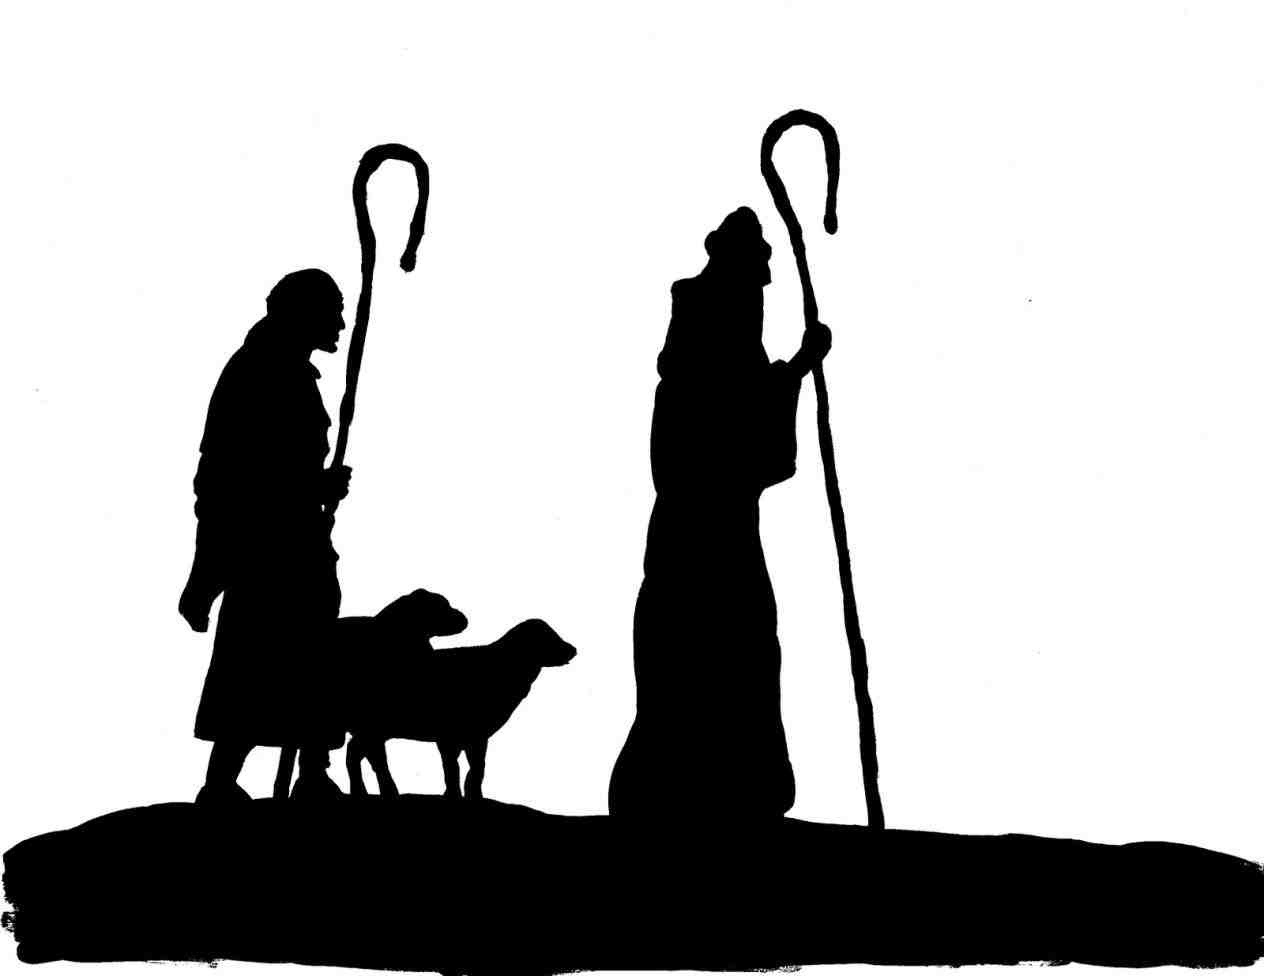 Collection Of Nativity Scene Clipart | Free Download Best Nativity - Free Printable Nativity Silhouette